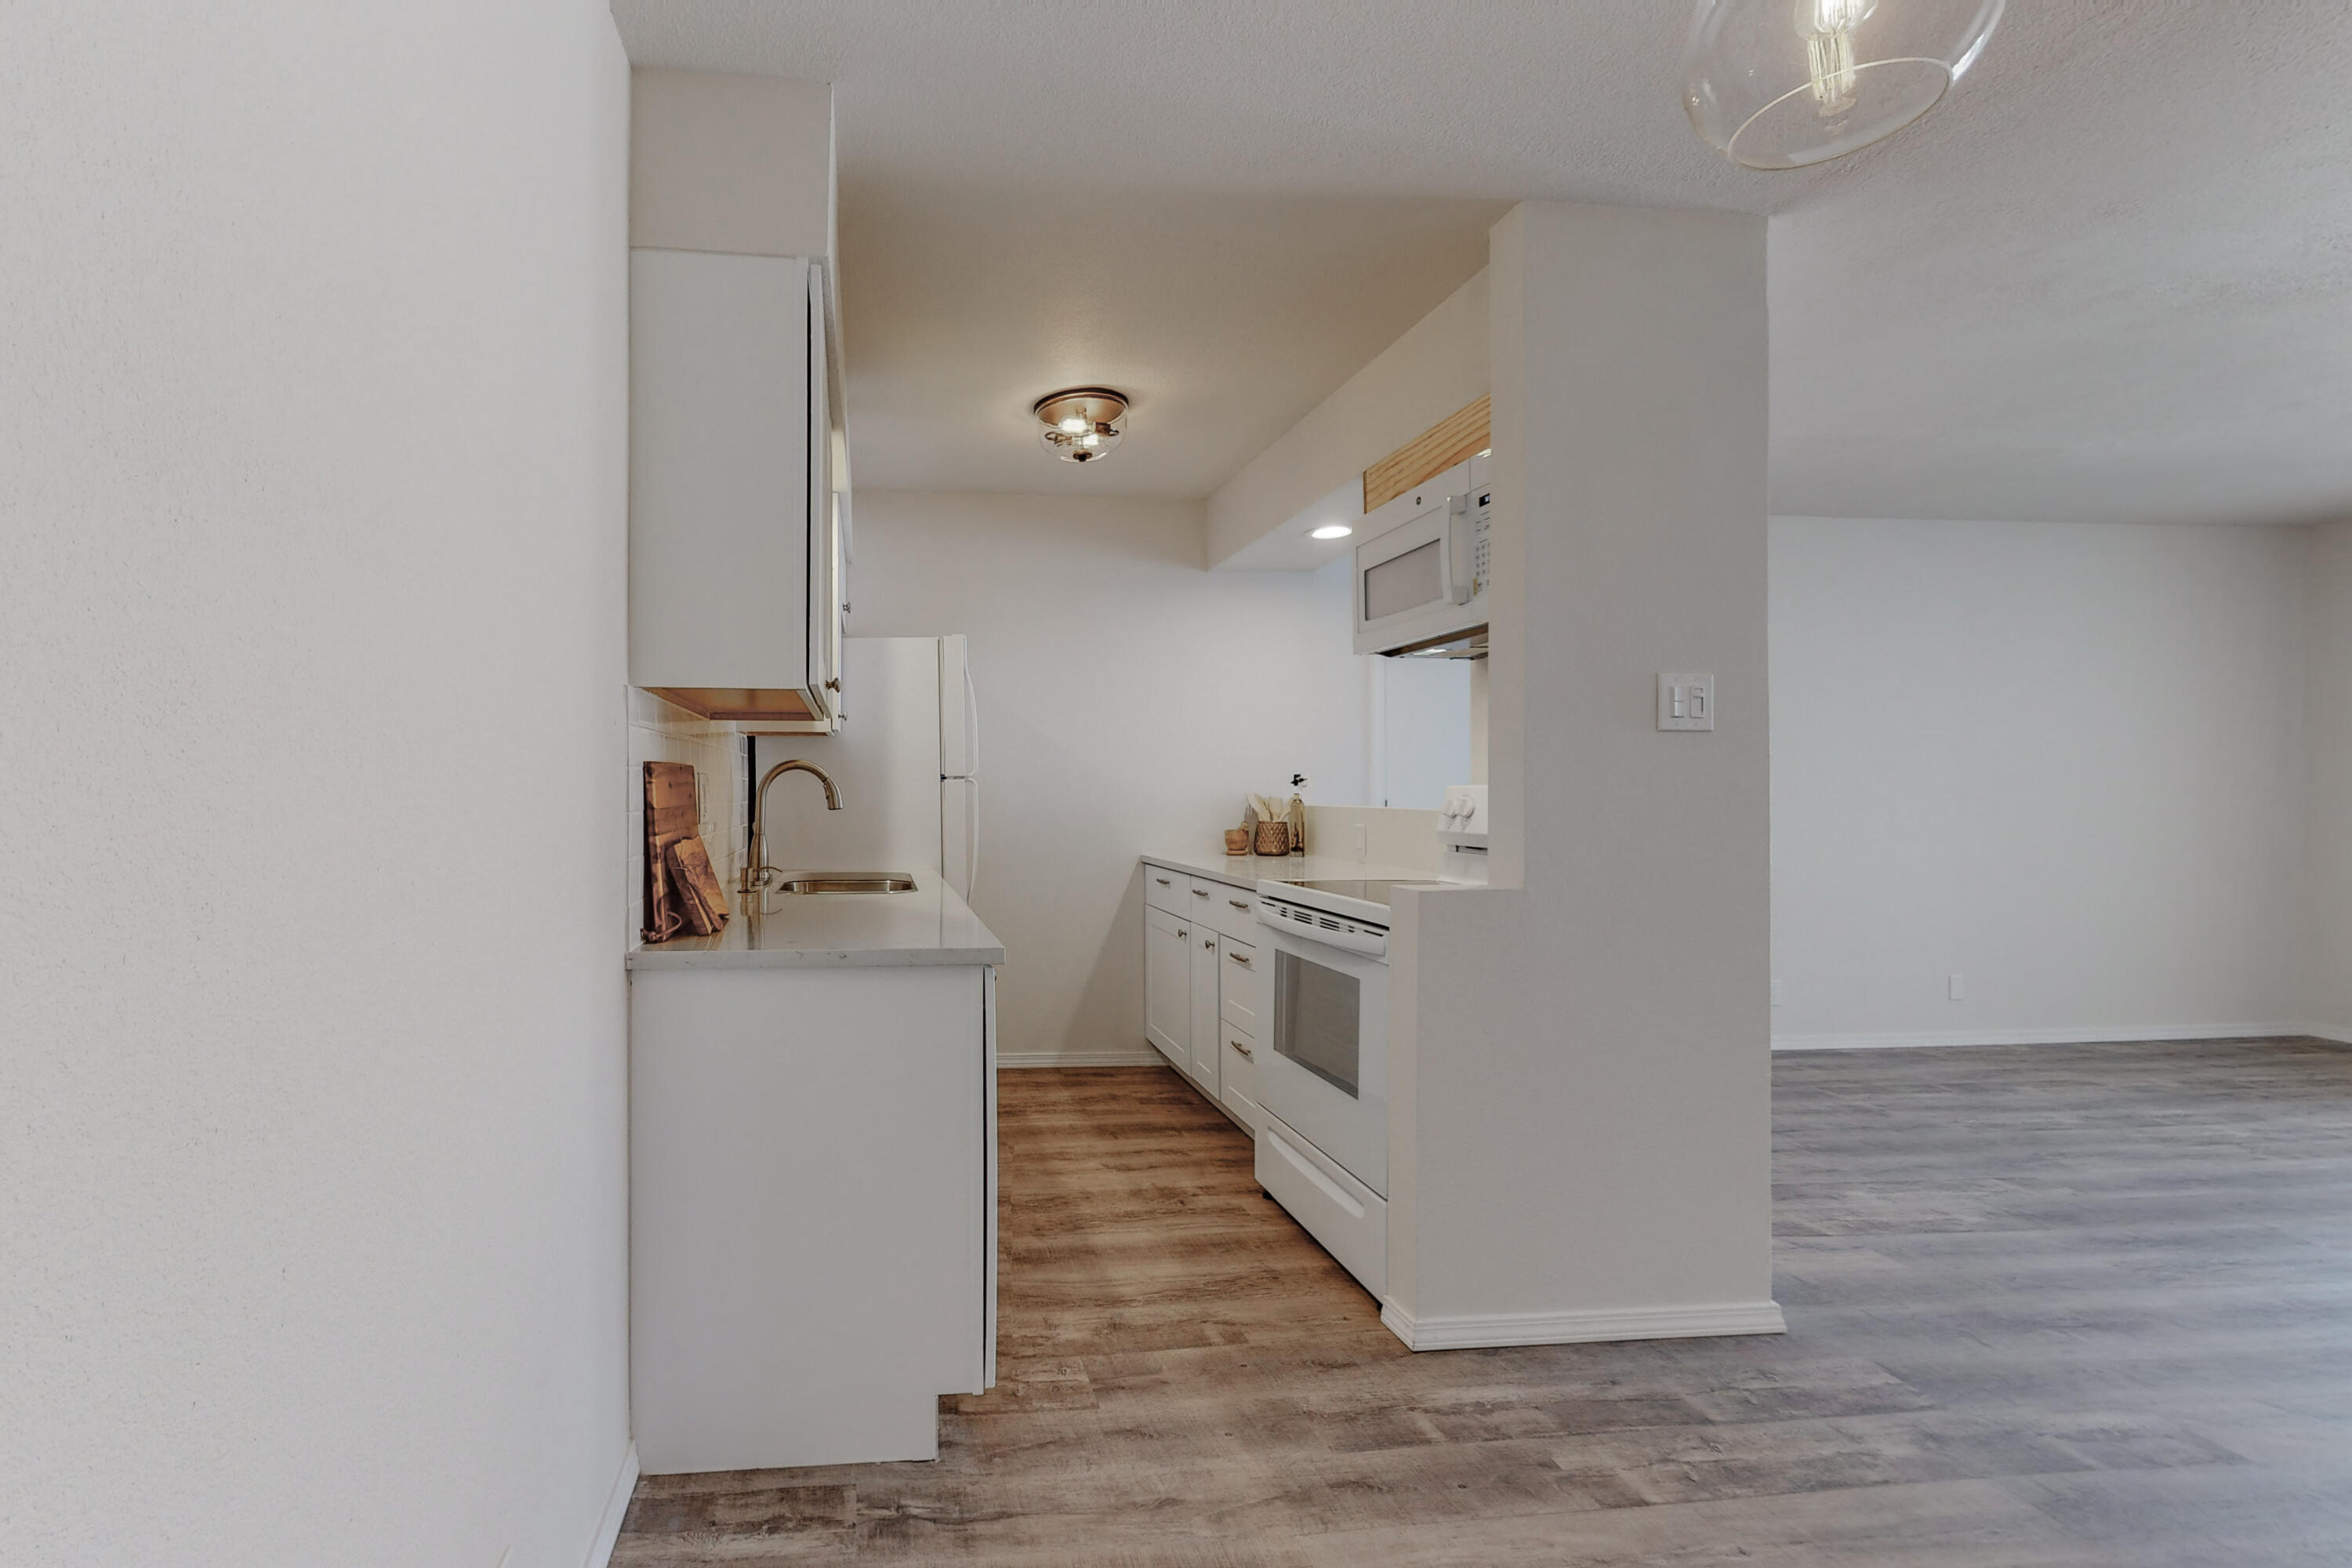 Gorgeous remodeled condo with a view! Darling property with top to bottom updates; renovated kitchen &, bathrooms including cabinets, subway tile, countertops, flooring, paint, raised panel doors, light & plumbing fixtures, chic barn door for the pantry and more! There is a sweet balcony on the far south side off the bedroom with no neighbor just sky, trees and mountain view too! Hurry, this could be your ABQ Dream Home!